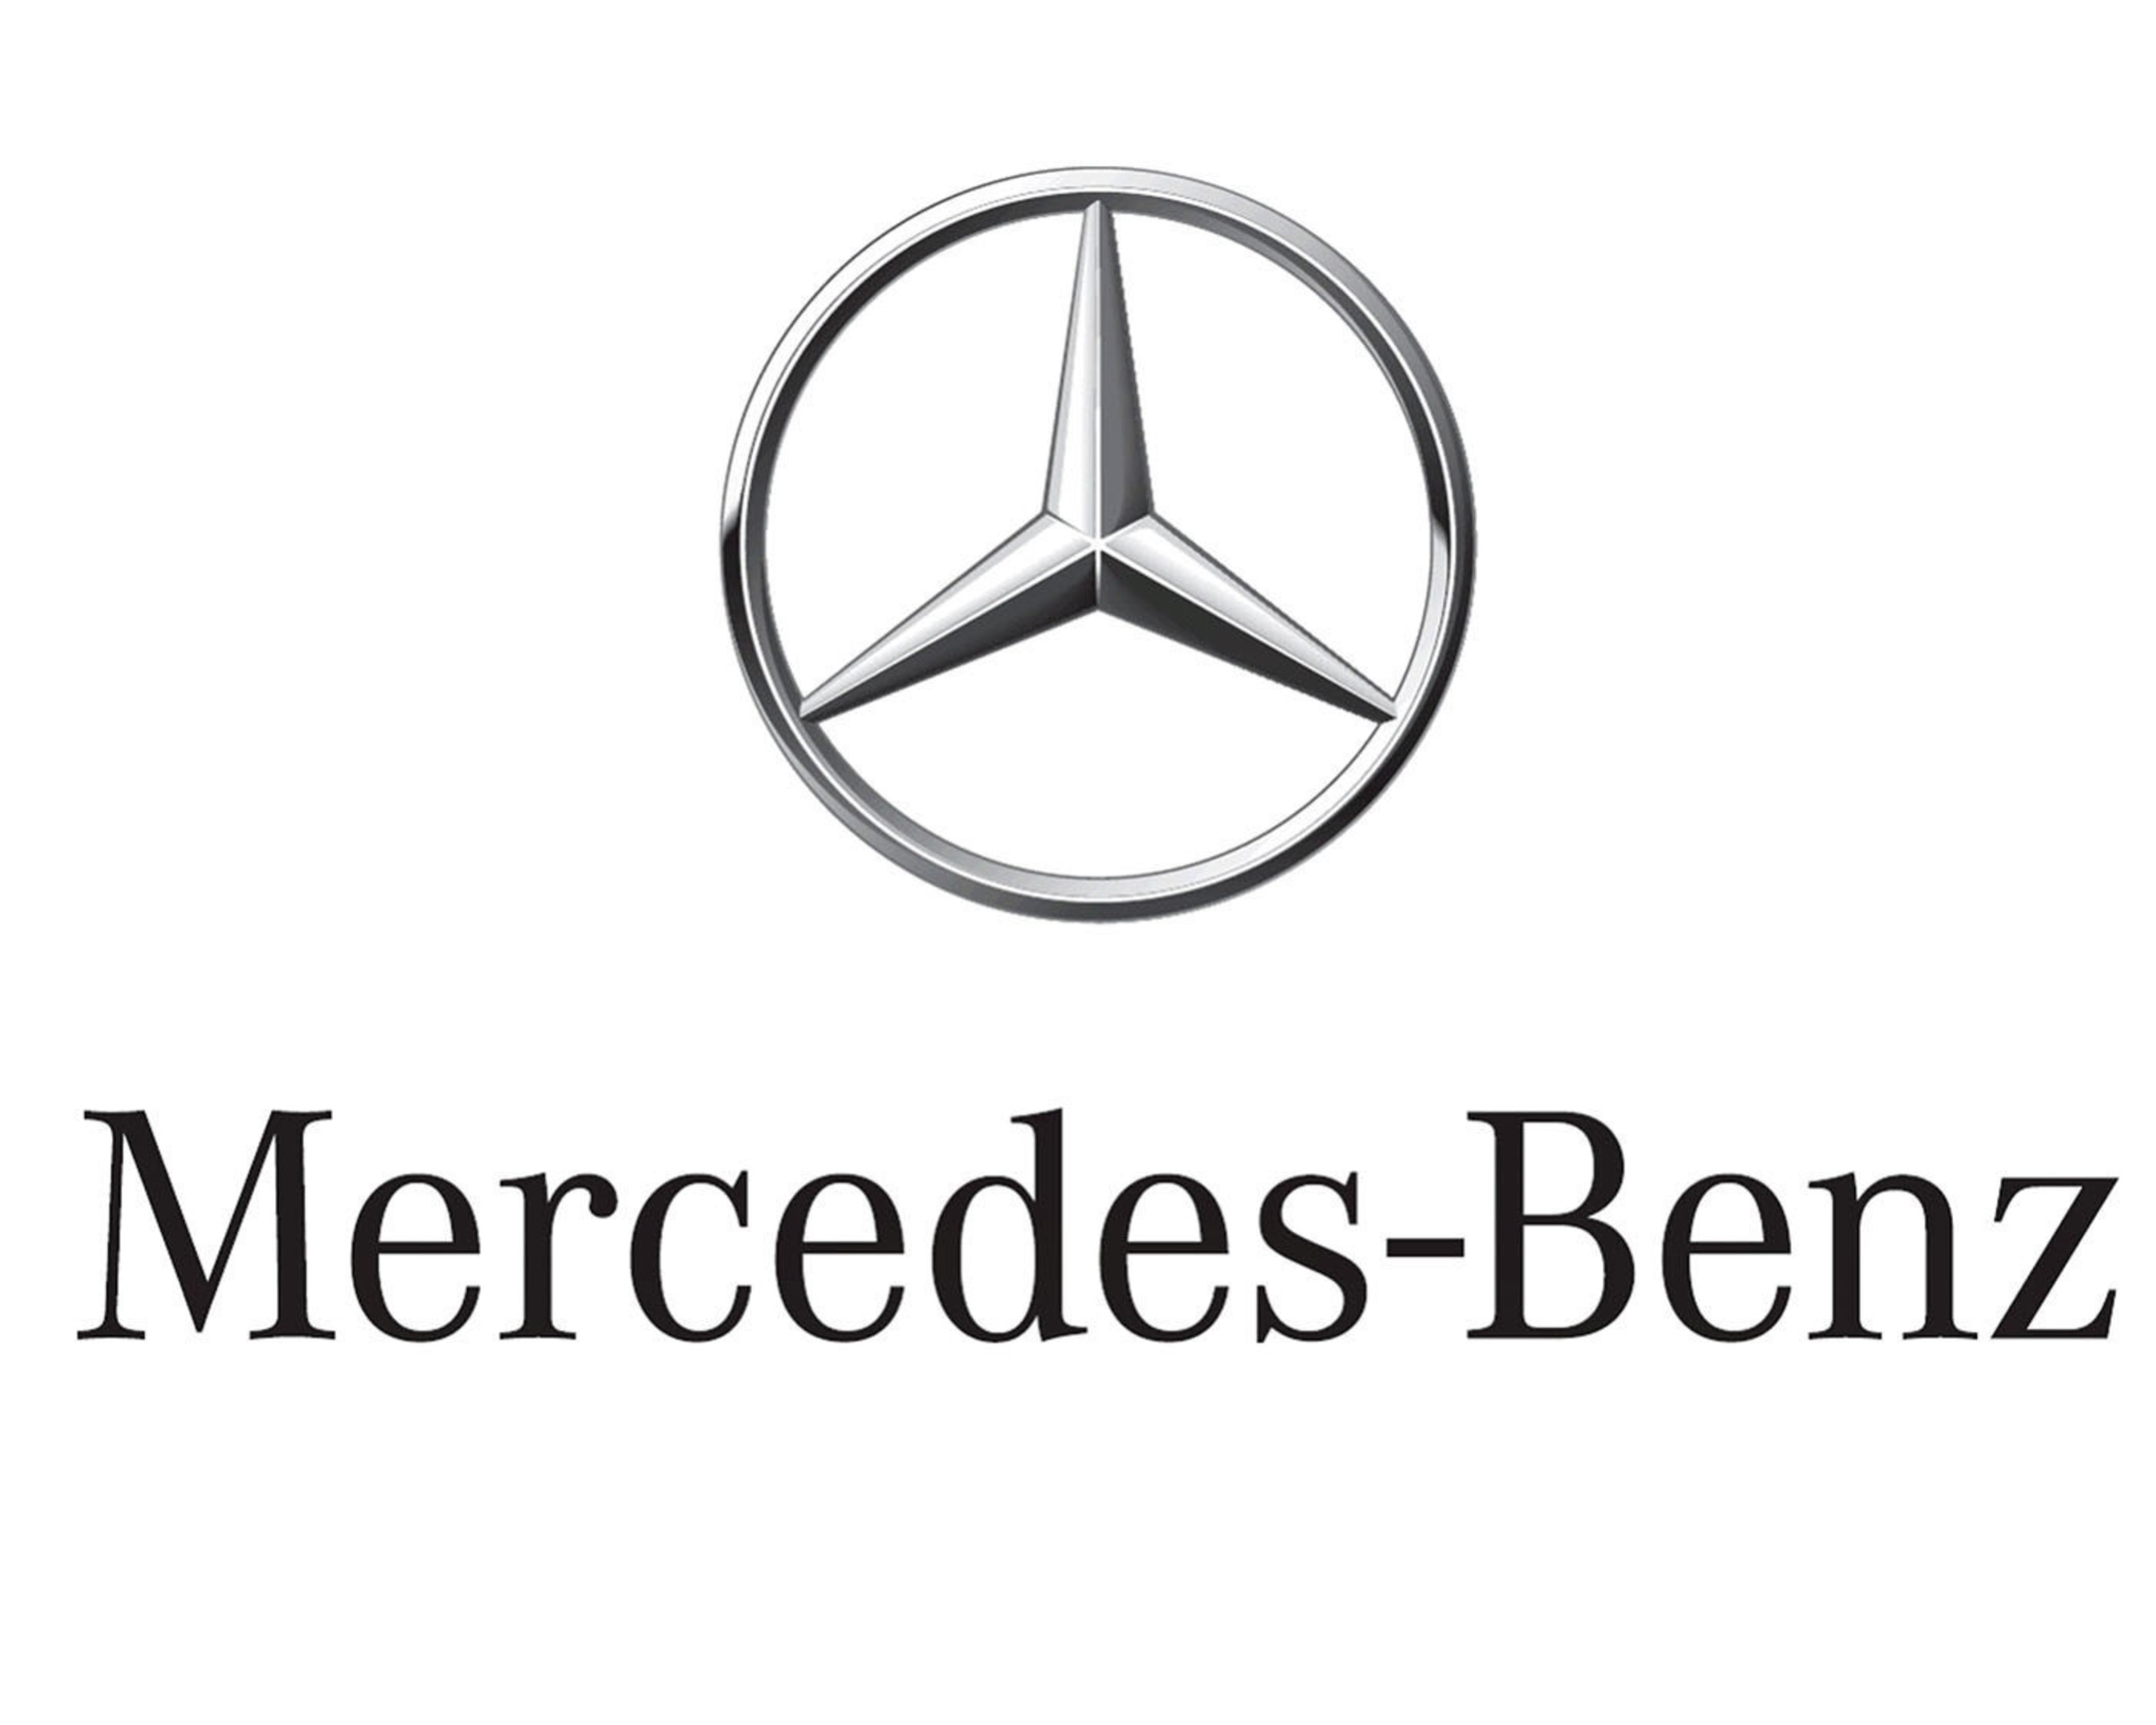 Mercedes Benz USA Announces Appointment Of Christian Treiber To Vice  President, Customer Services